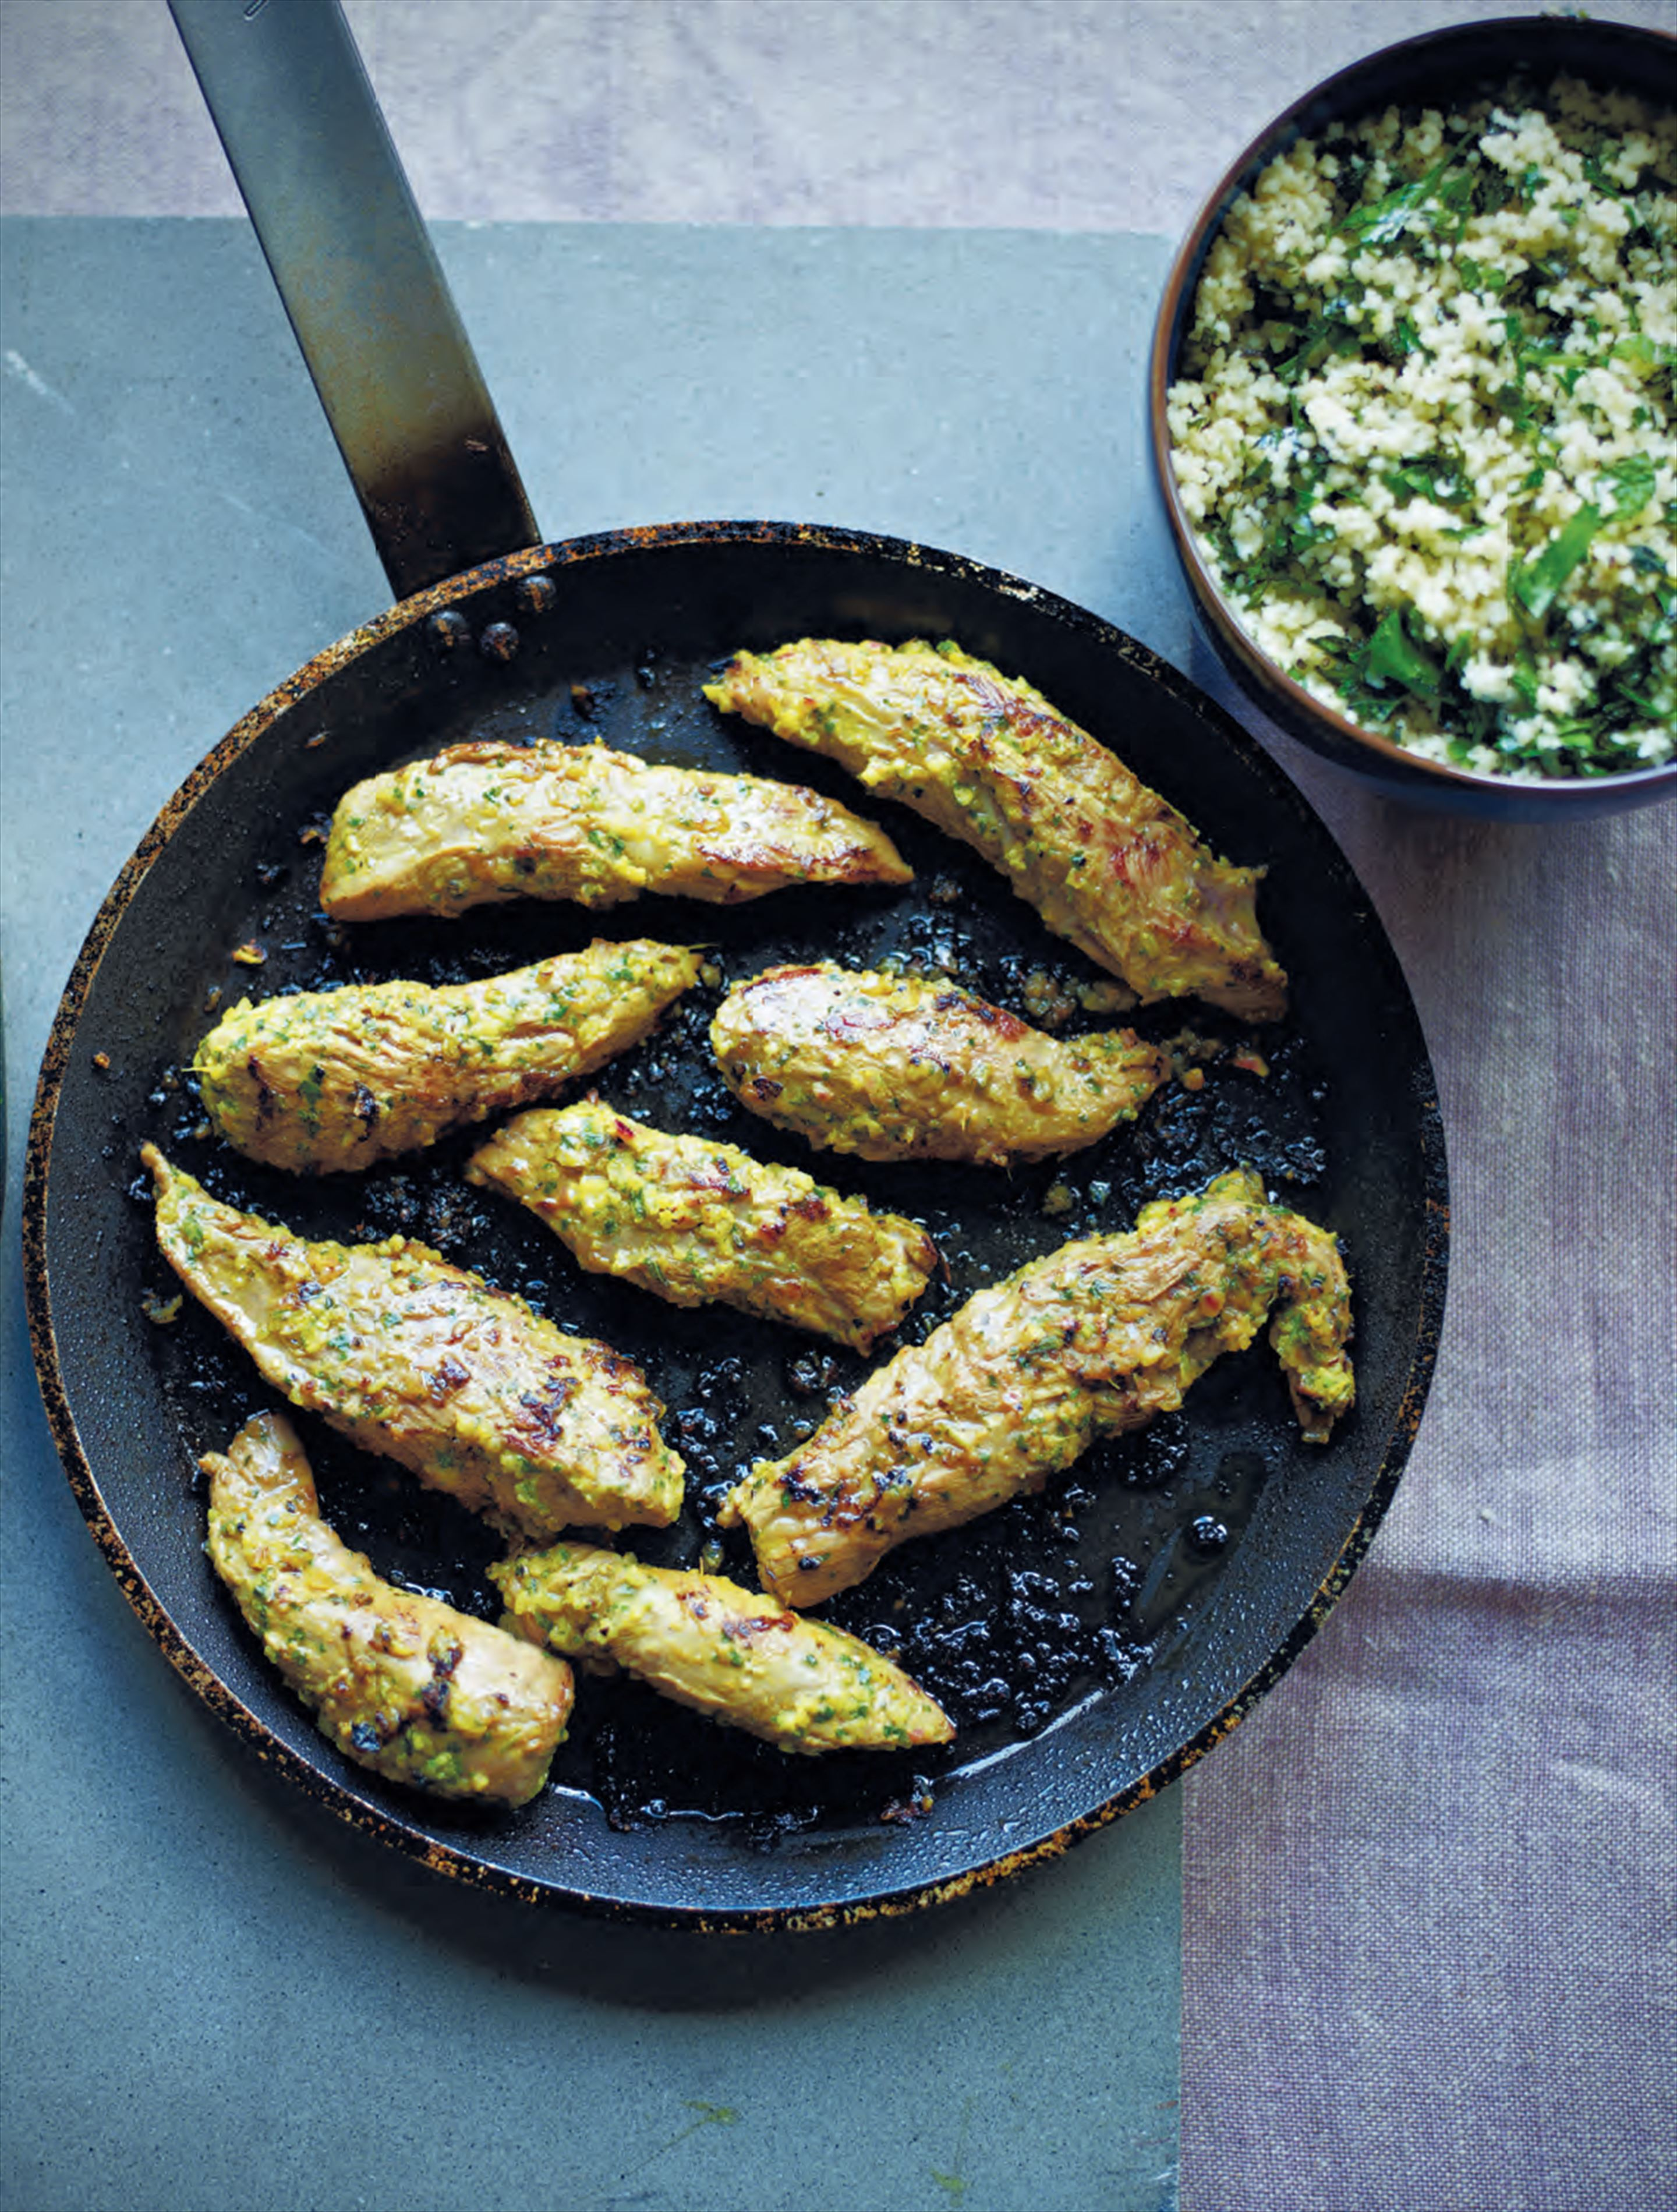 Pan-fried lamb with chermoula & herb couscous